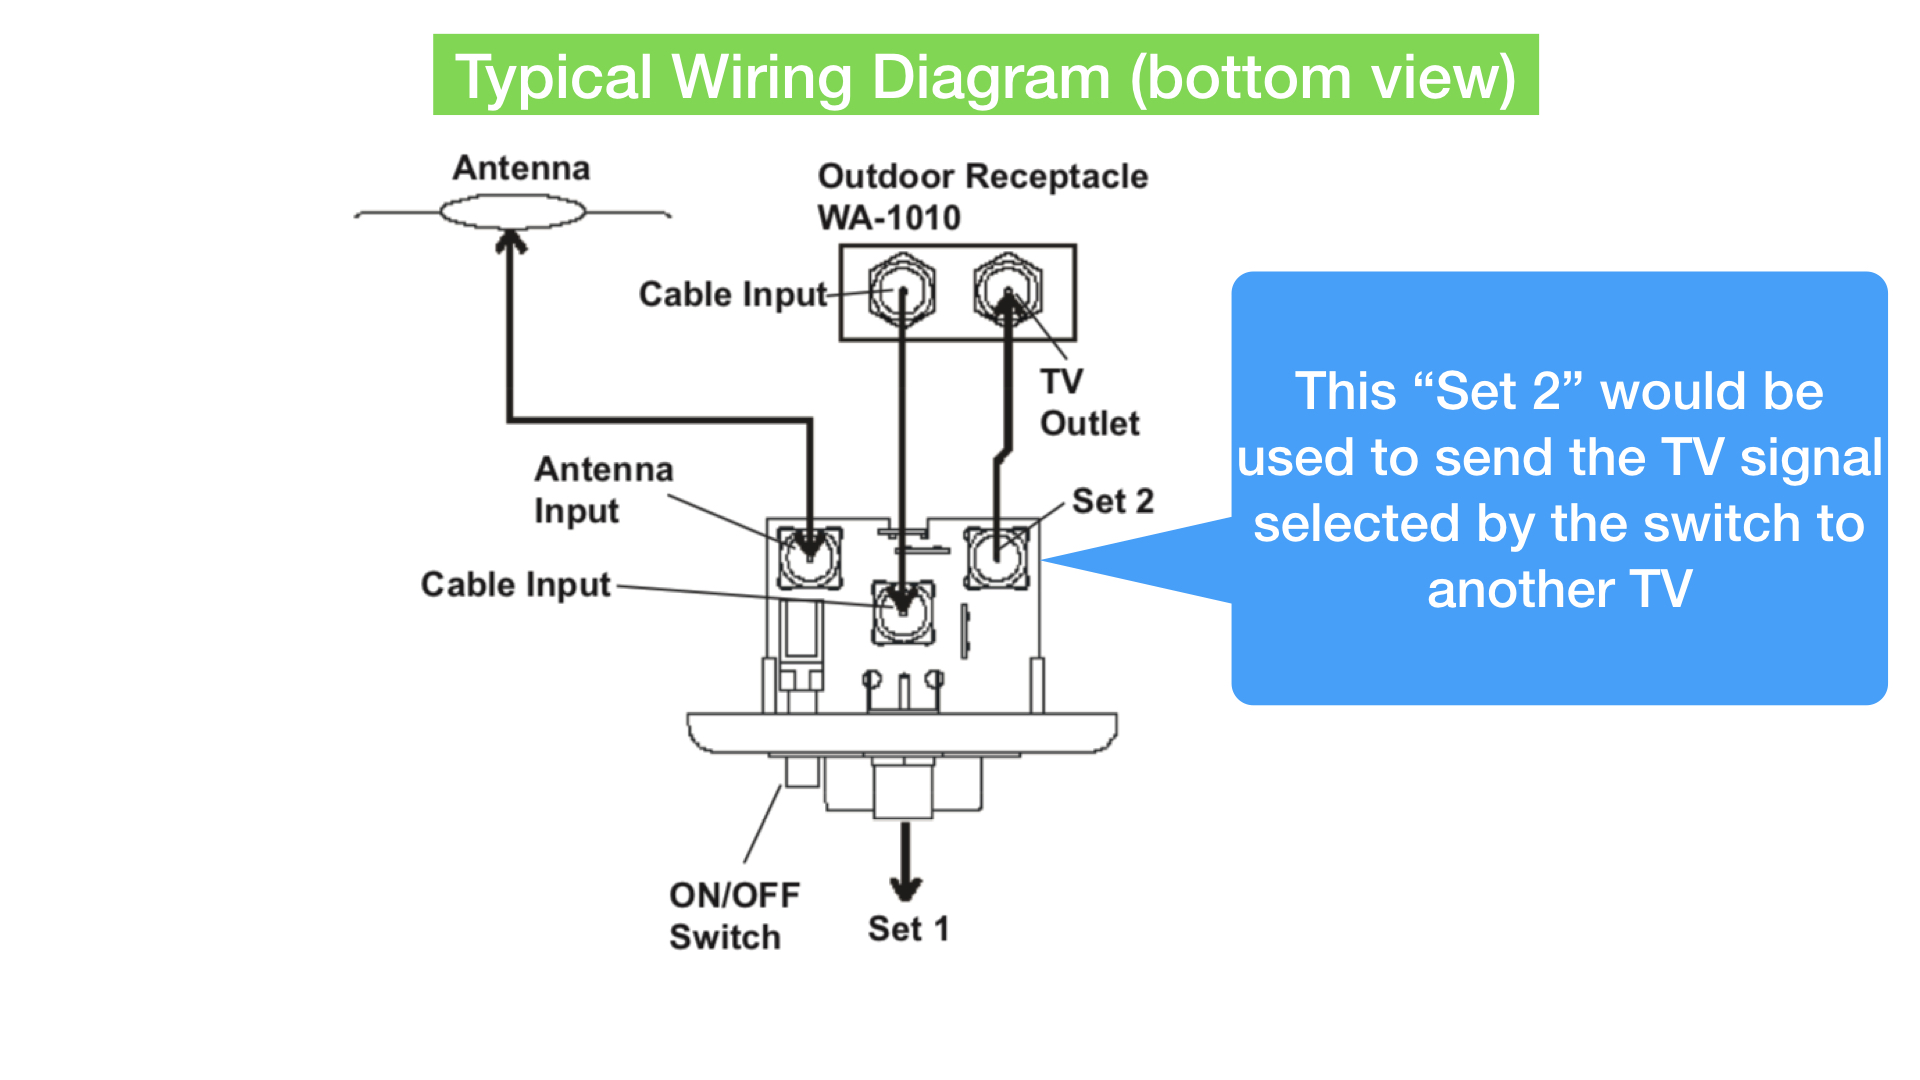 hight resolution of rv tv cable wiring diagram wiring diagram autovehicle wiring diagram for cable box to tv to dvd tv antenna for rv wiring